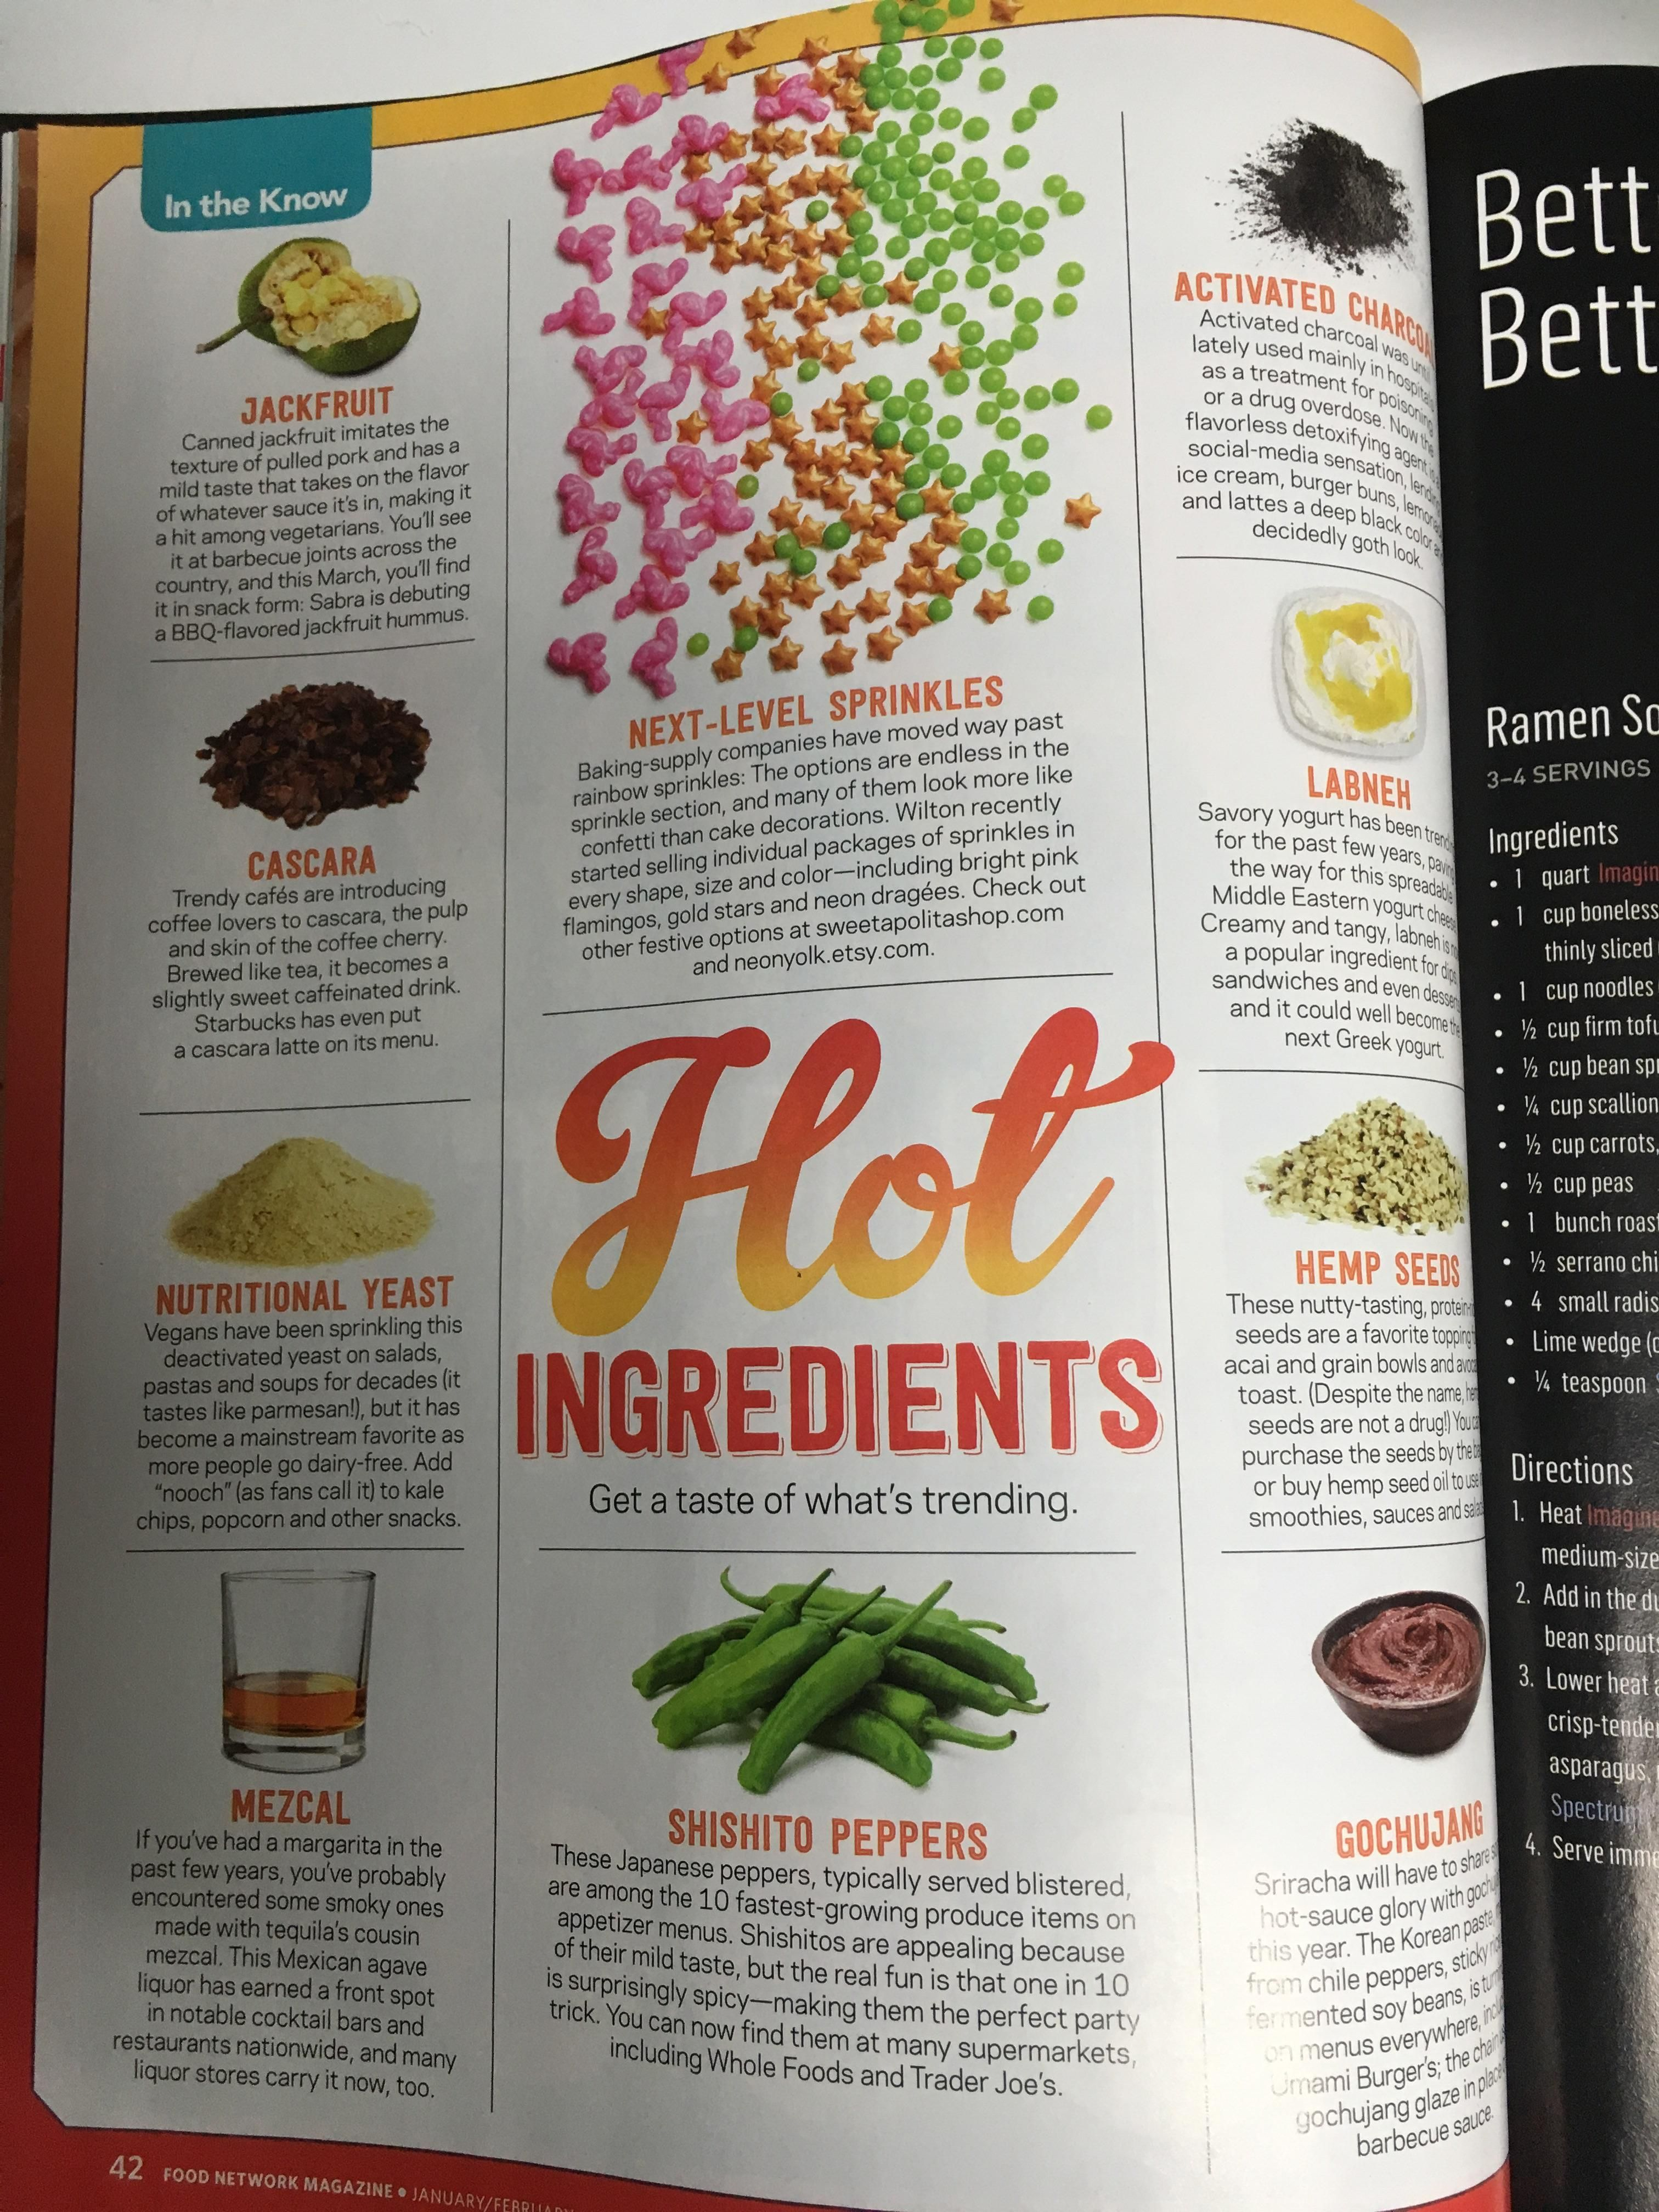 This months food network magazine getting on board with vegan foods this months food network magazine getting on board with vegan foods ugh so mainstream jk forumfinder Gallery